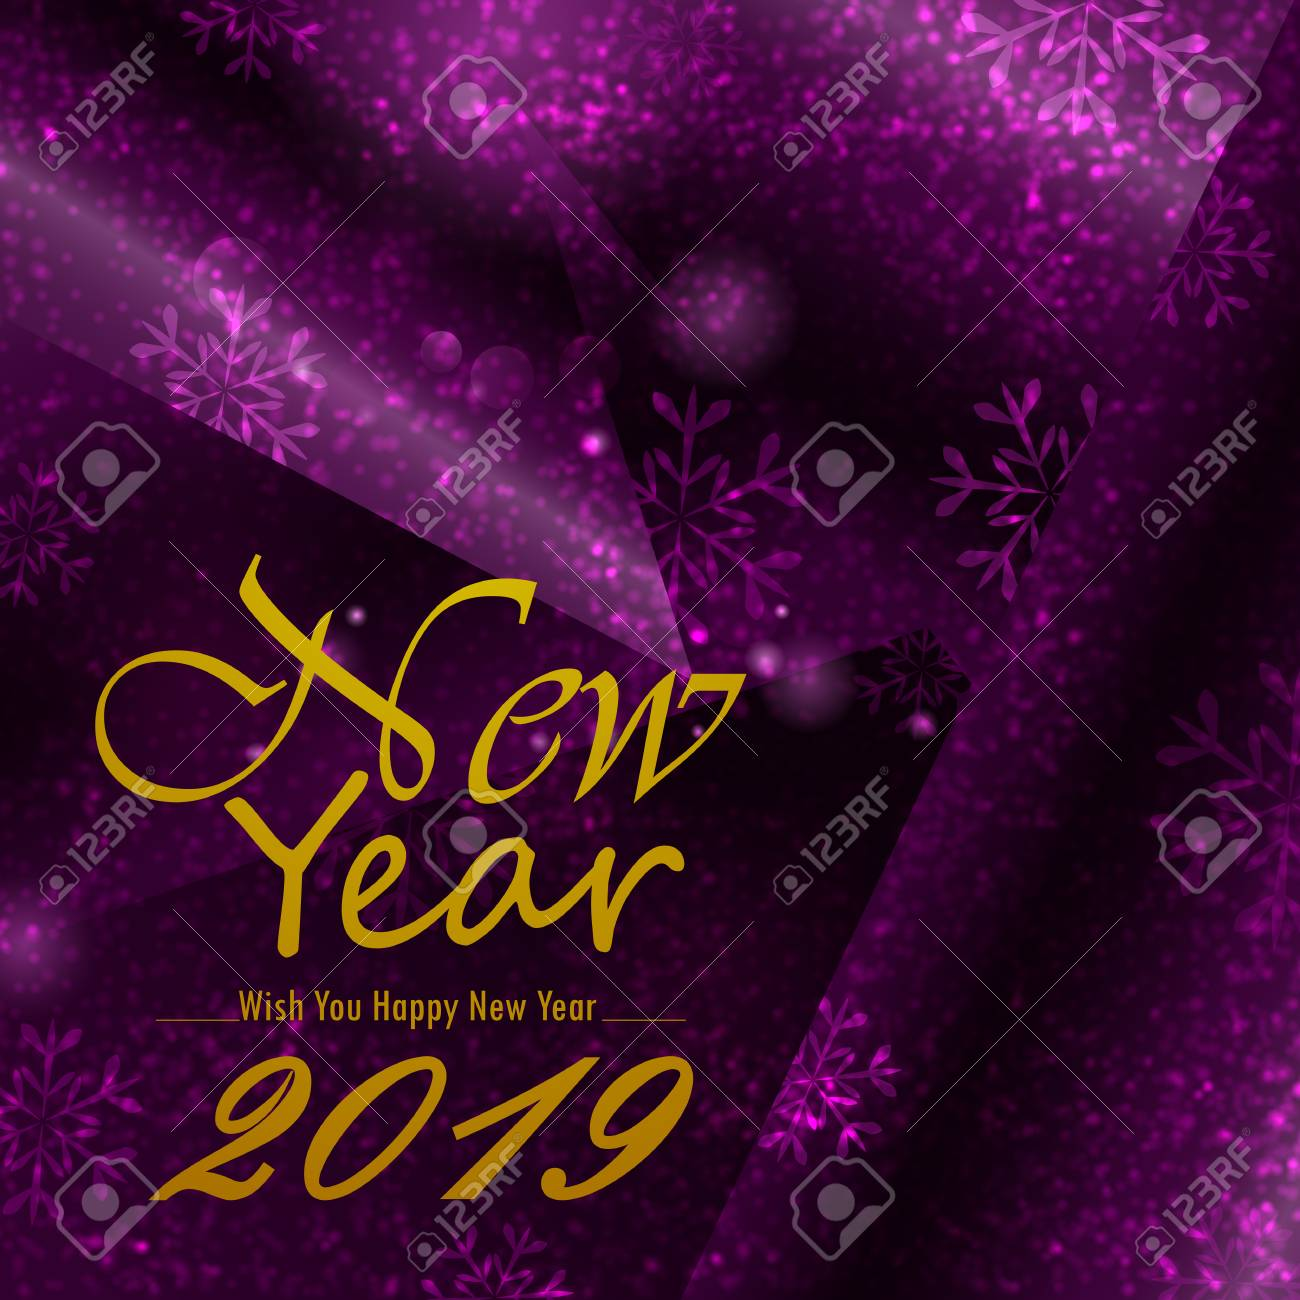 happy new year 2019 wishes greeting card template background design stock vector 112303929